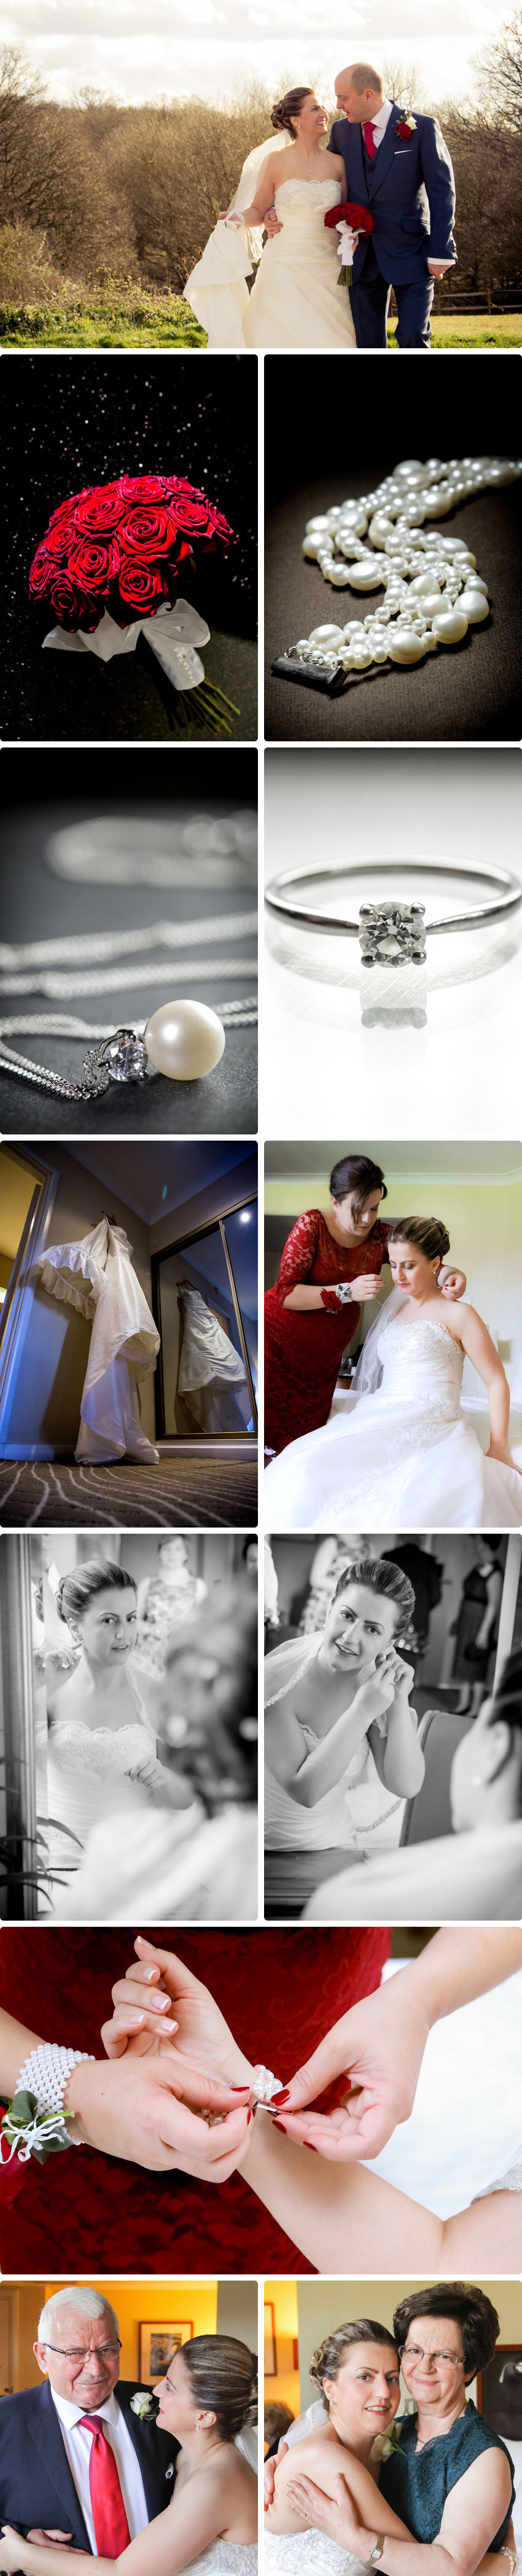 Lena's preparation - Wedding at Waltham Abbey Marriott Hotel 01